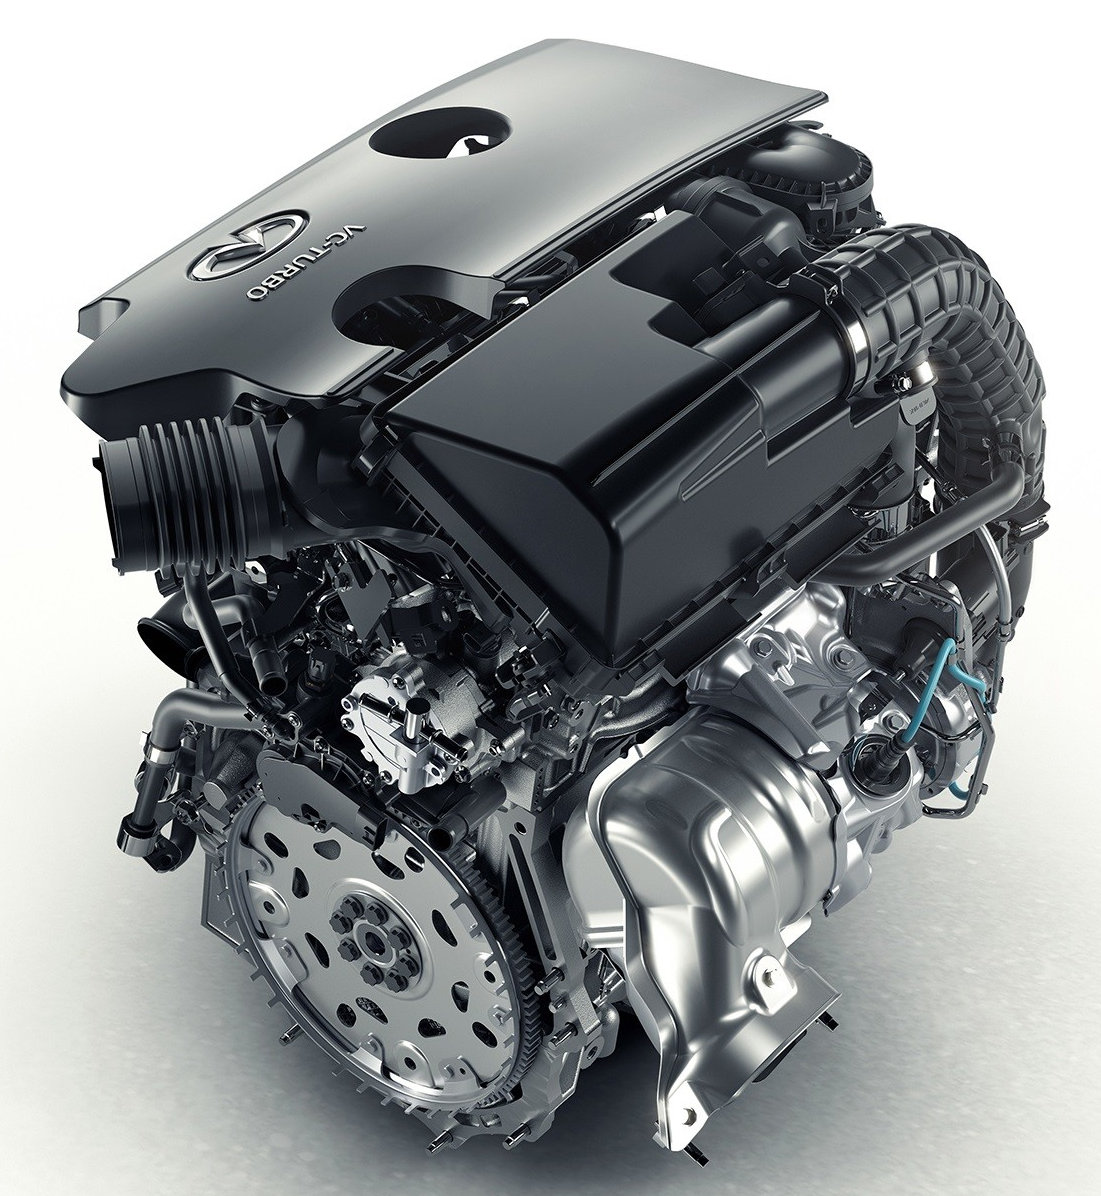 INFINITI VC-T The worlds first production-ready variable compression ratio engine (1)